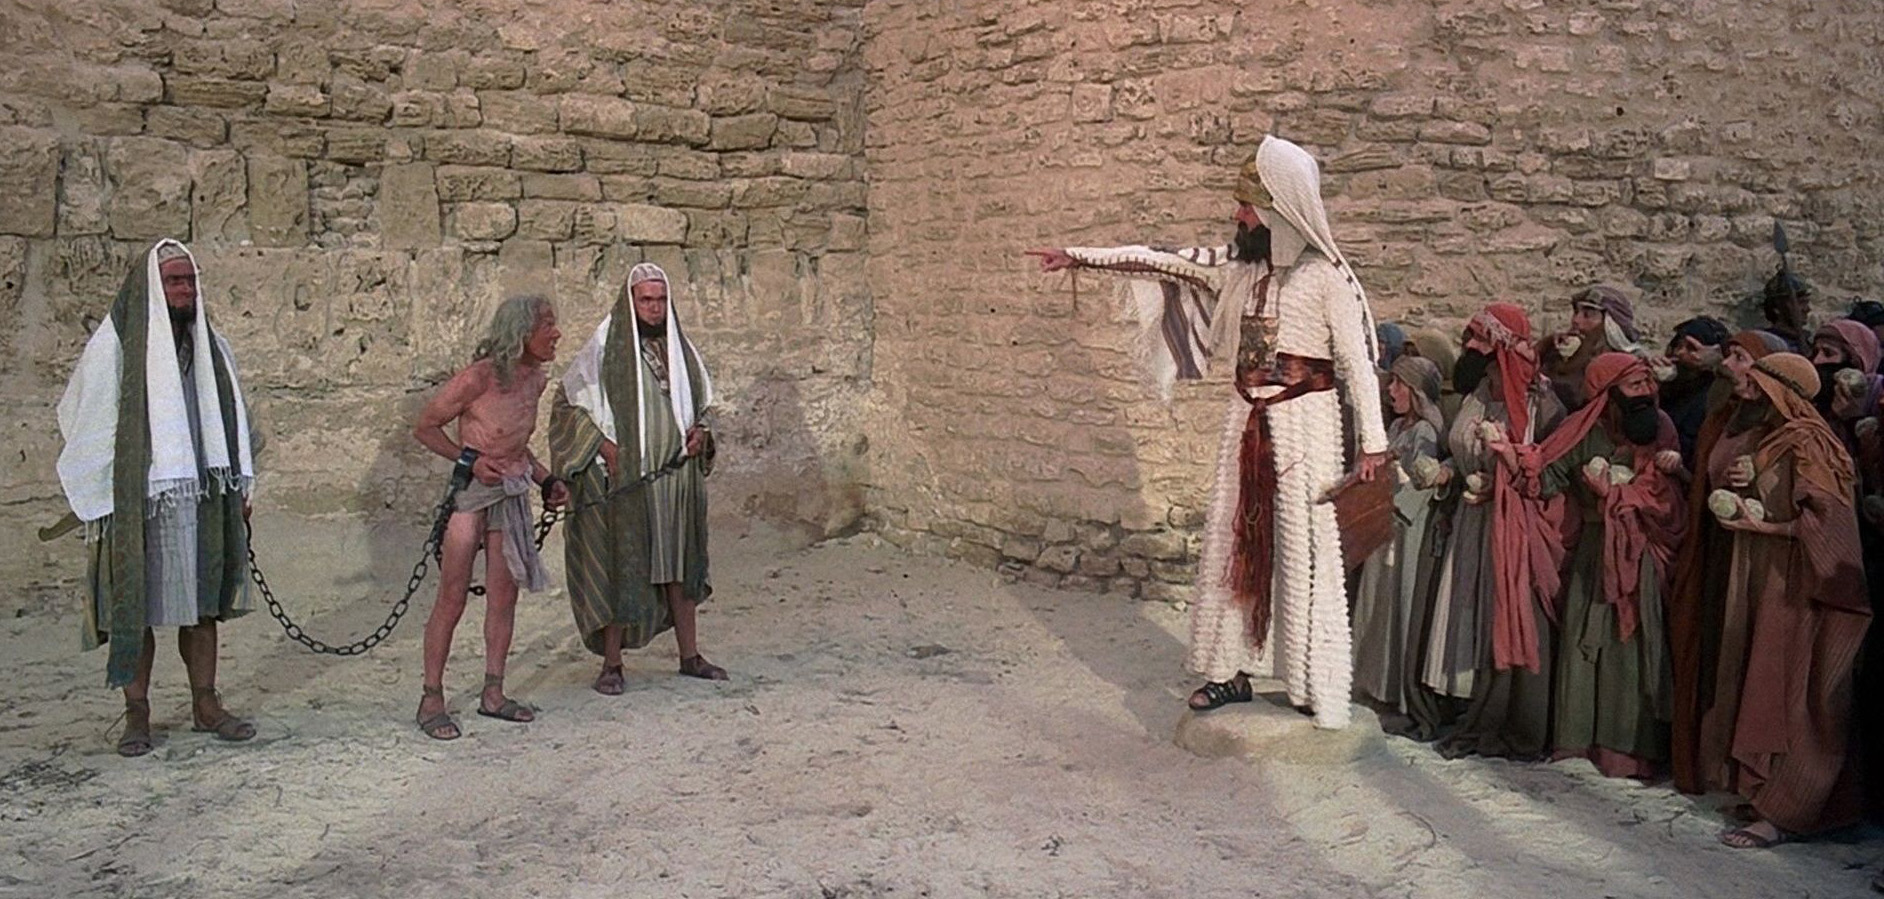 Stoning Scene - The Life of Brian